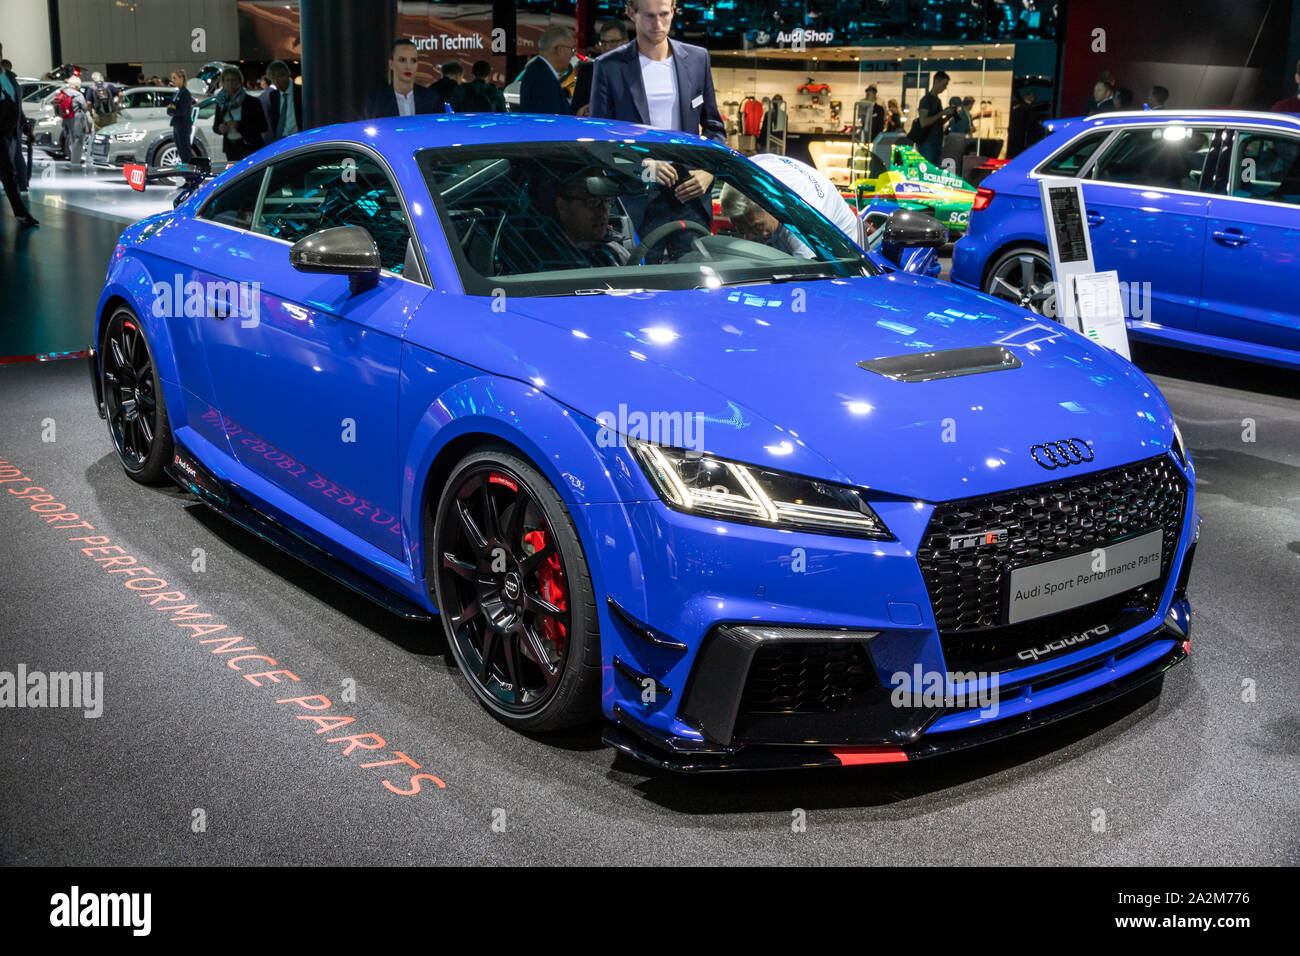 Frankfurt Germany Sep 13 2017 Audi Tt Rs Coupe Sports Car Showcased At The Frankfurt Iaa Motor Show Stock Photo Alamy